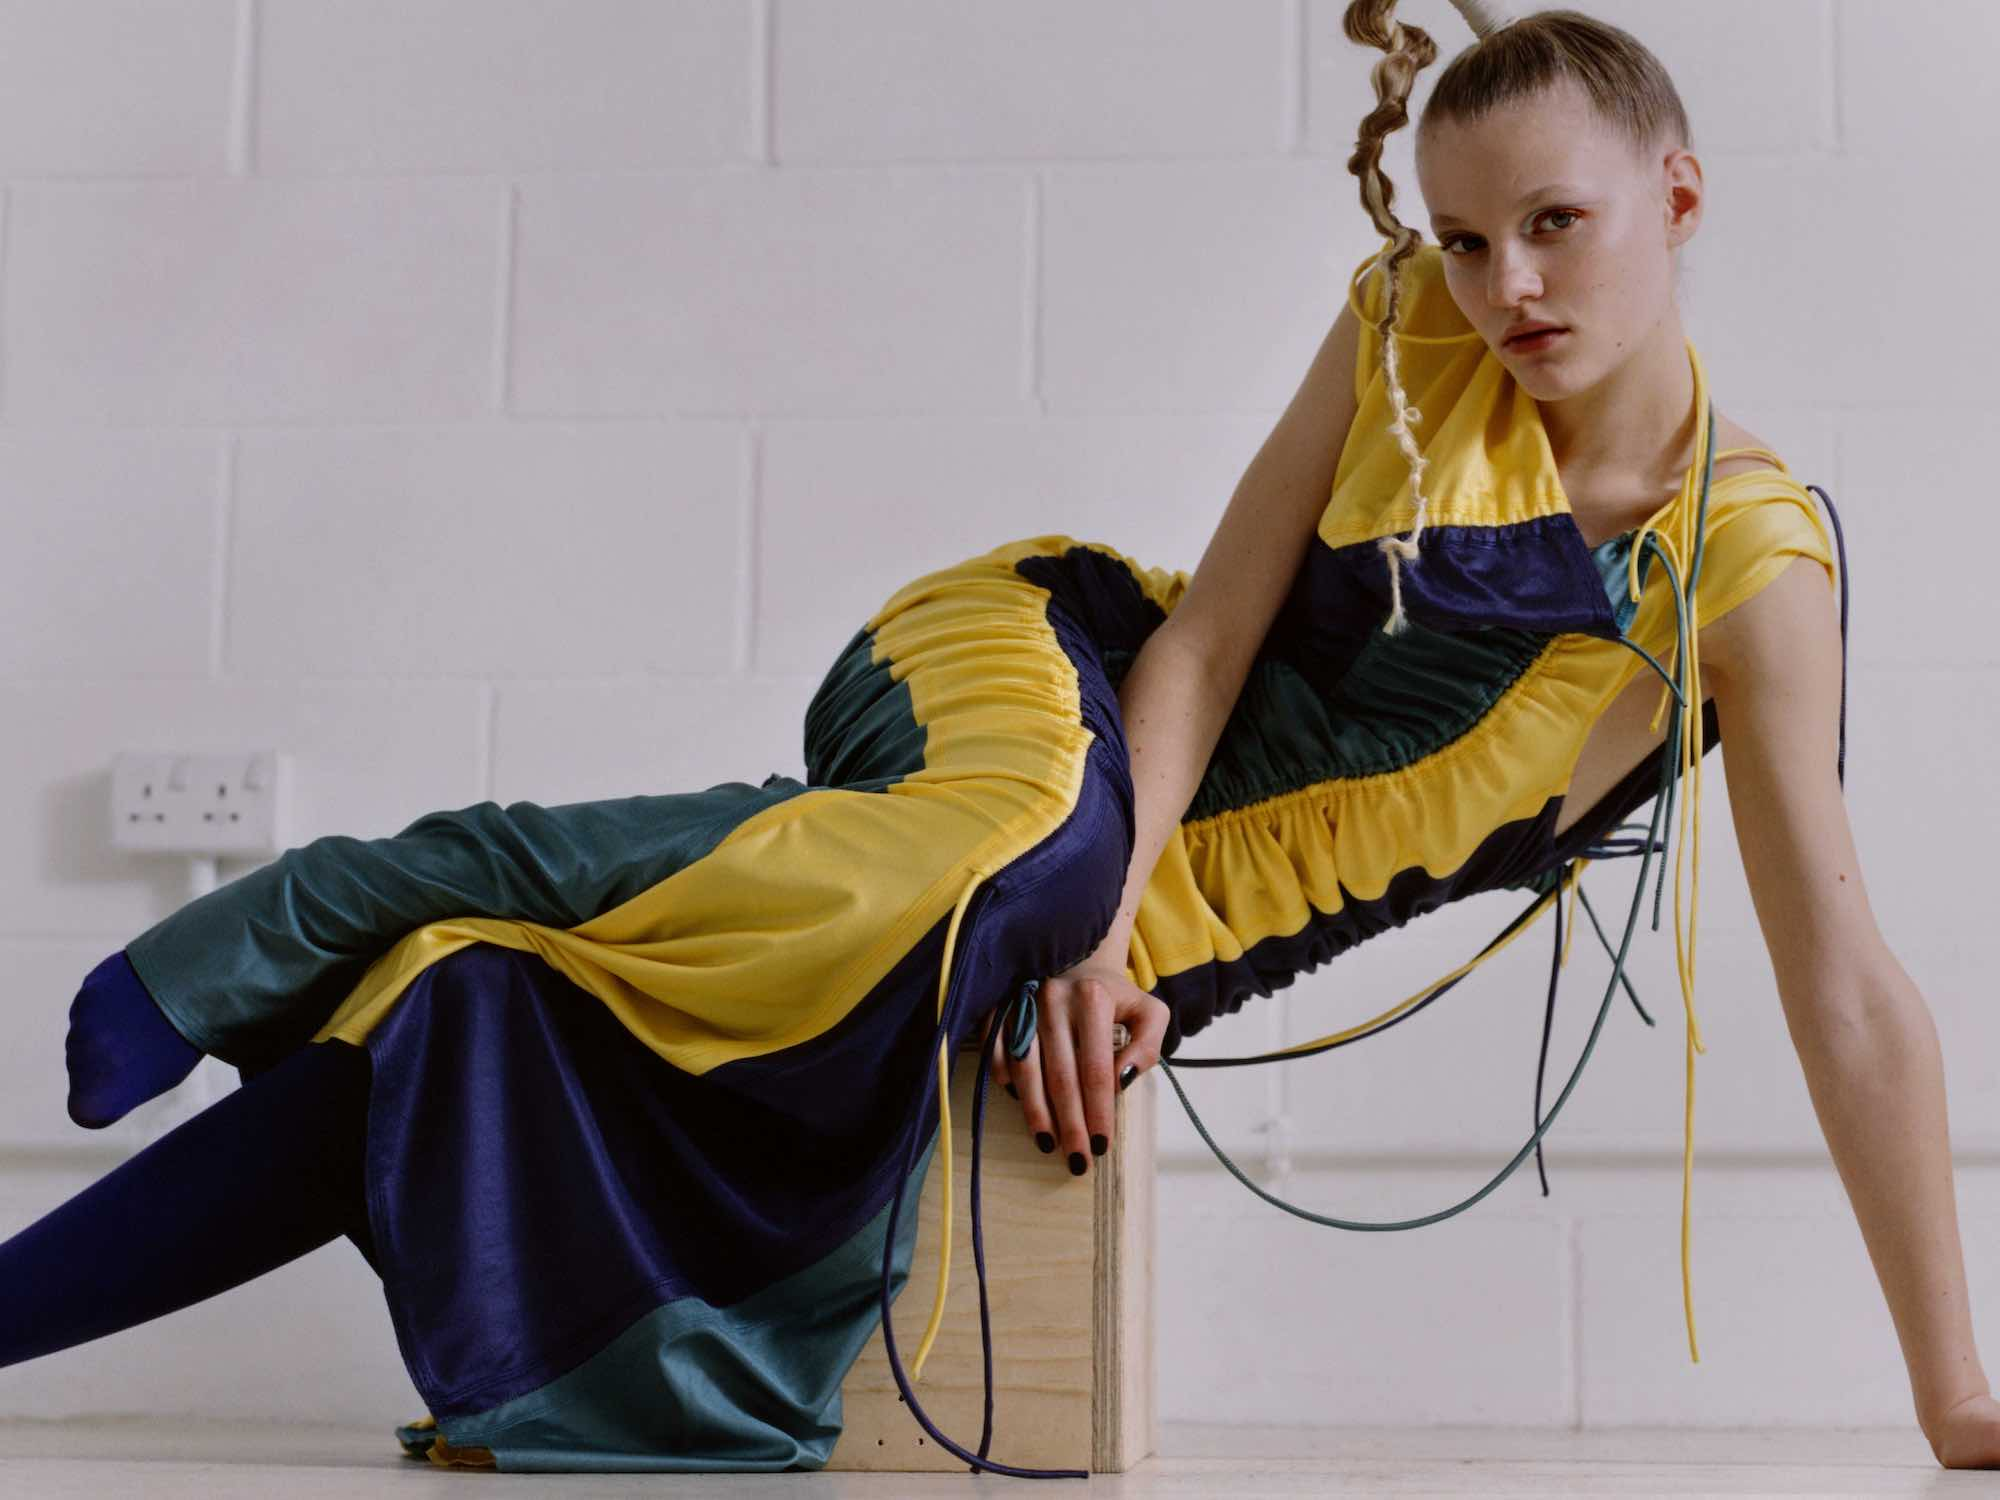 Intergalactic editorial from Spring 19 issue of Wonderland yellow dress